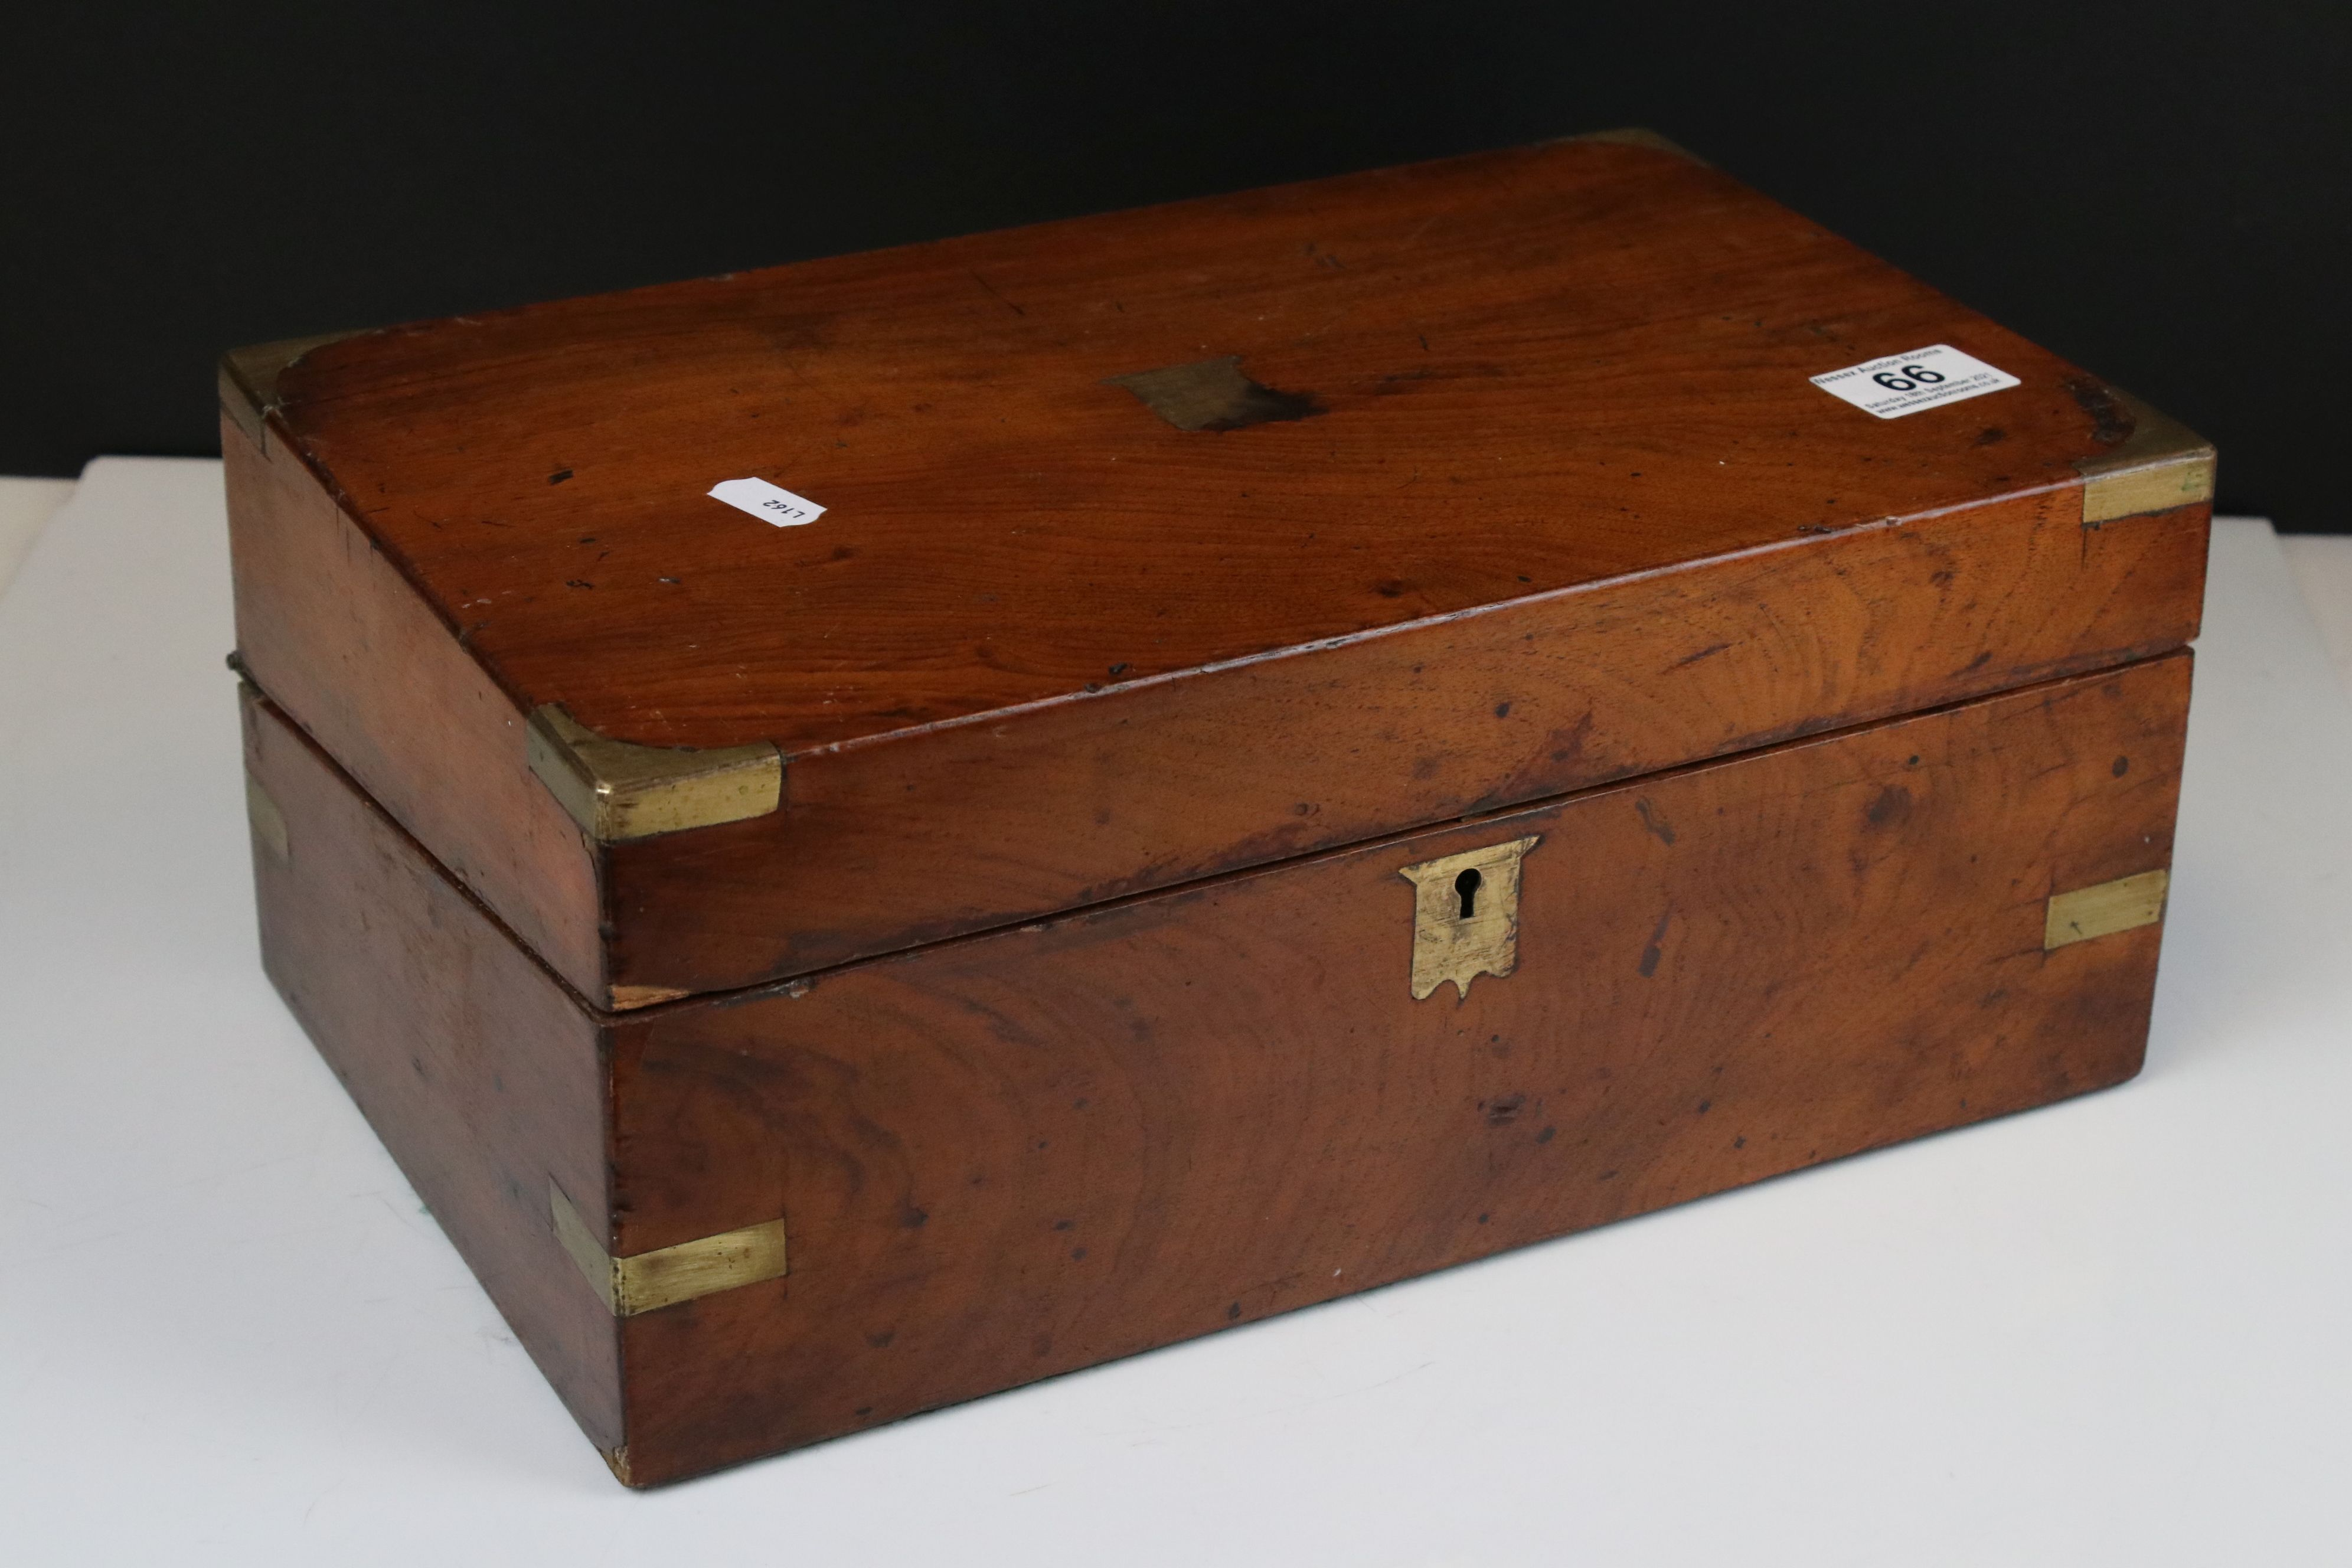 19th century Mahogany and Brass Mounted Writing Slope Box, 35cms wide